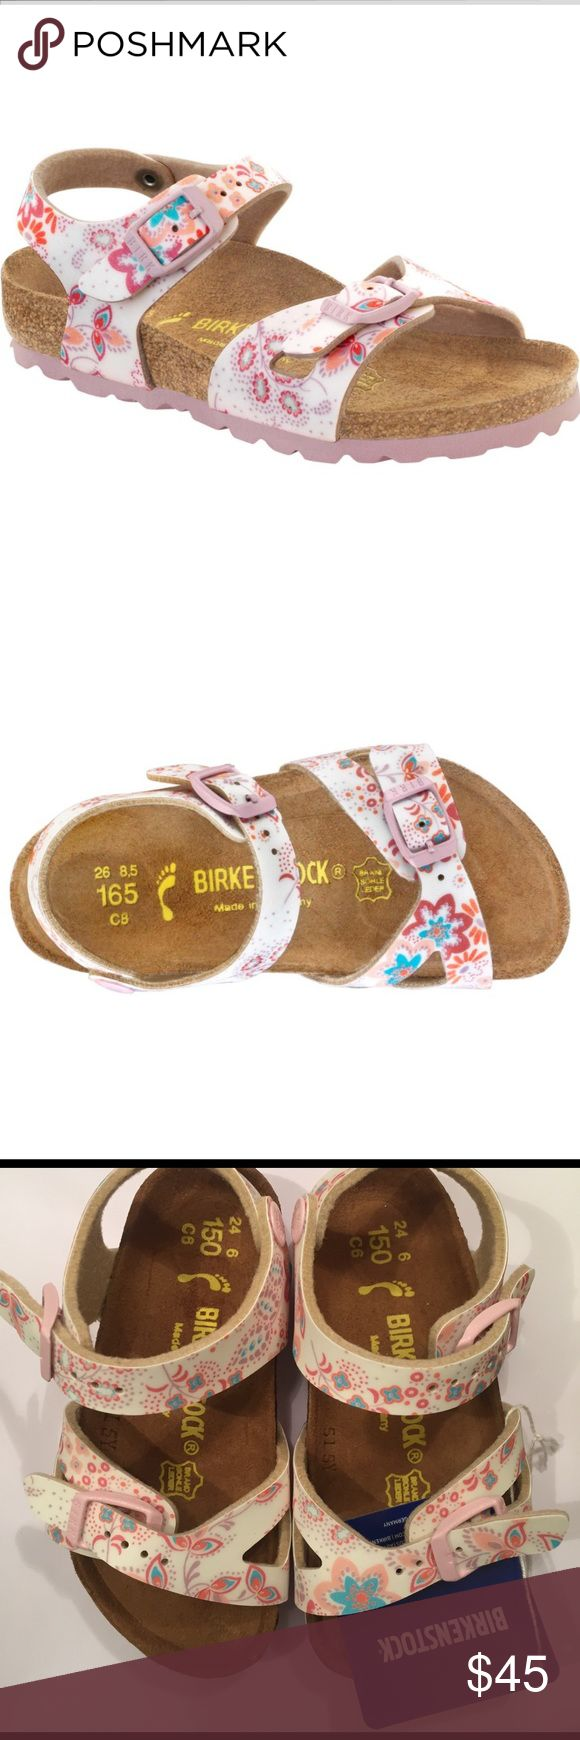 NEW Toddler girl BIRKENSTOCK RIO Cute Flowers Rose Brand new with tags!  Birkenstock Rio toddler little girls sandals!  Arizona style.  Cute flowers rose print.  Size 6 available.  Super comfortable and darling! Birkenstock Shoes Sandals & Flip Flops